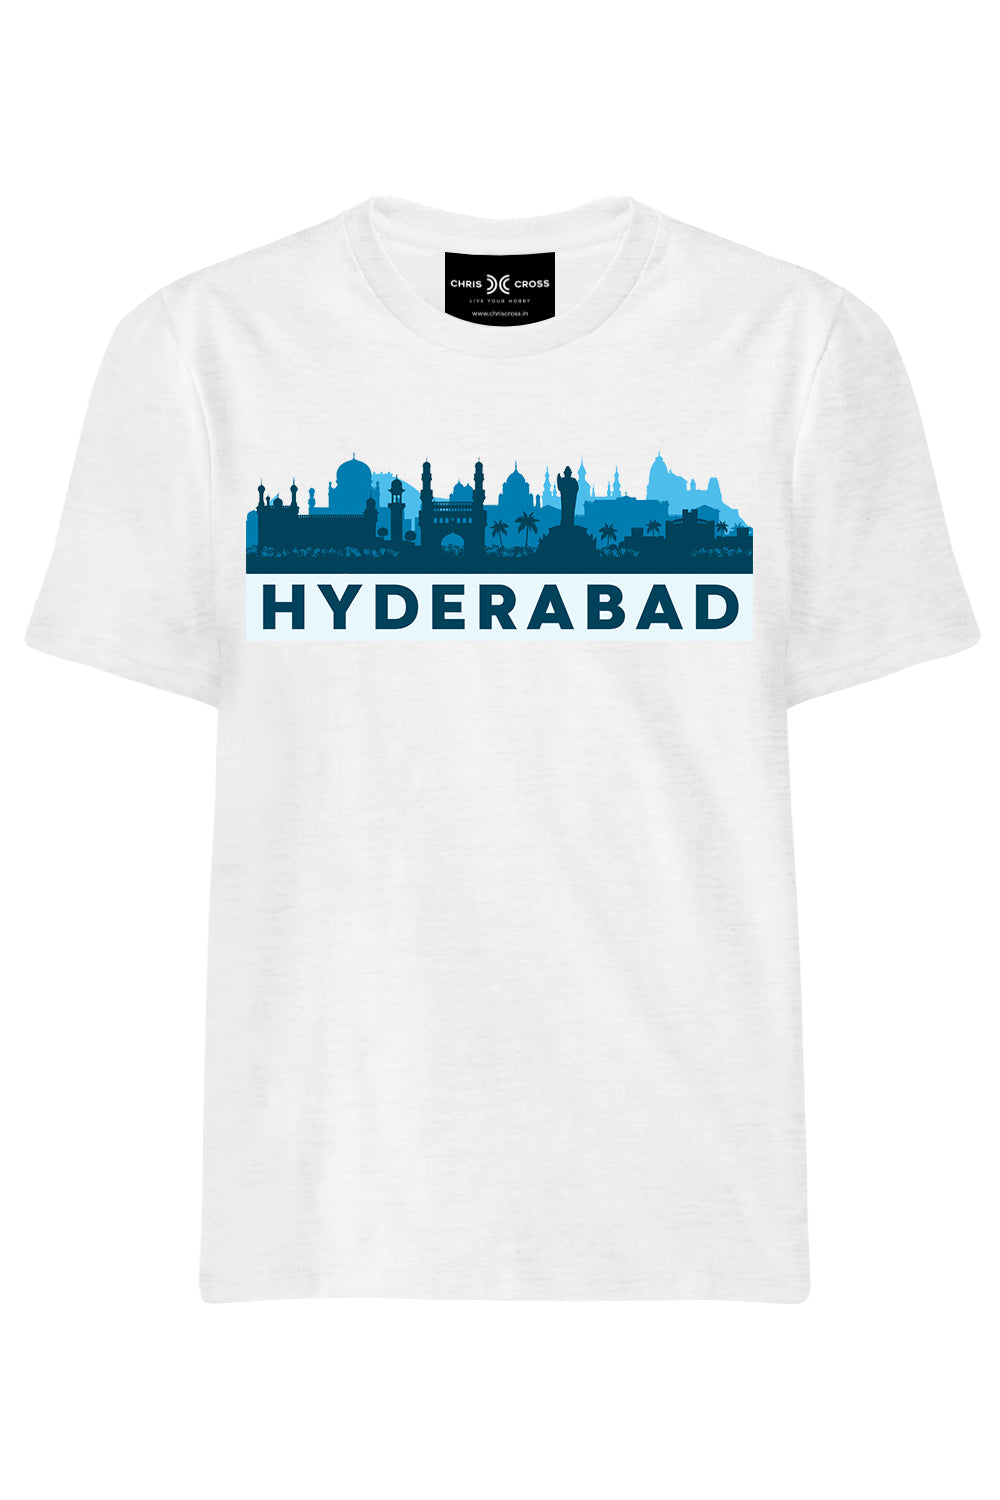 Hyderabad Souvenir T Shirt - ChrisCross.in